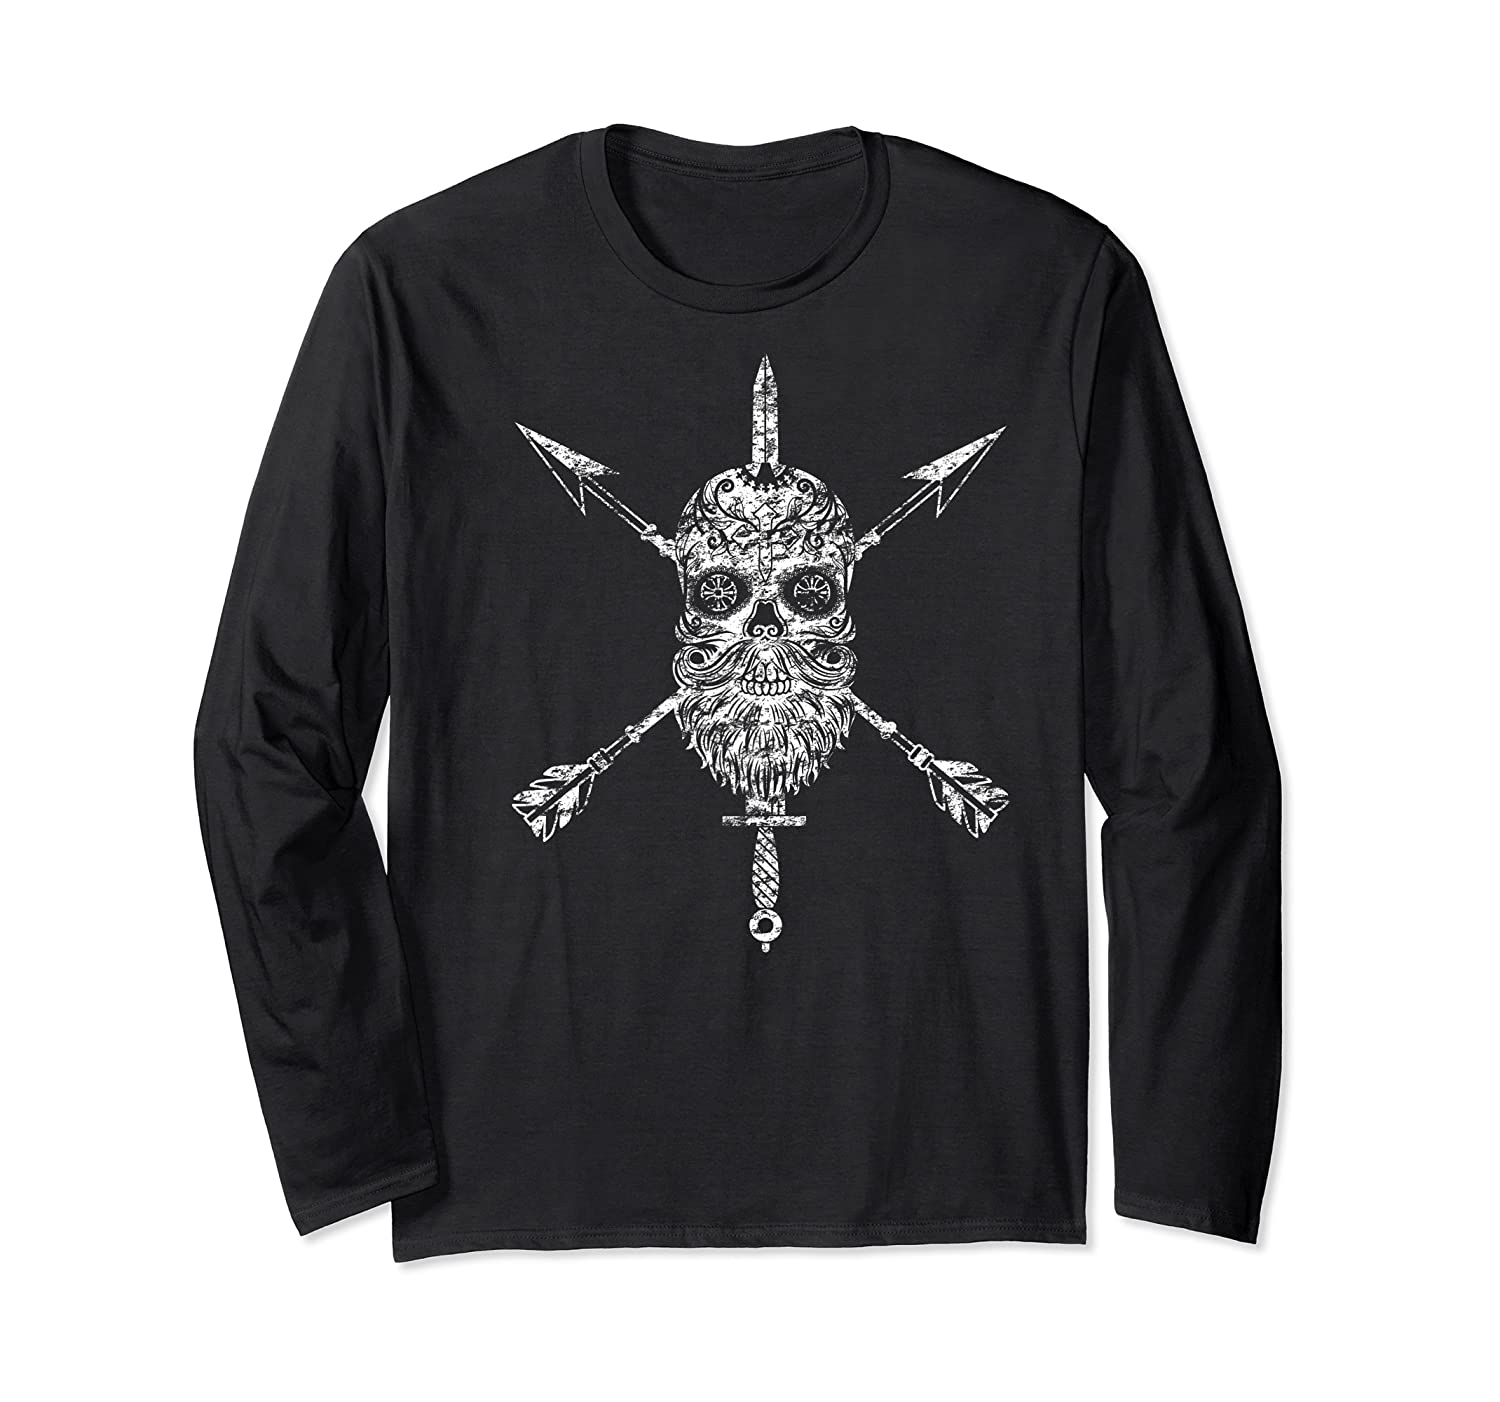 Vintage Sugar Skull Special Forces Military Tribute Design Shirts Long Sleeve T-shirt